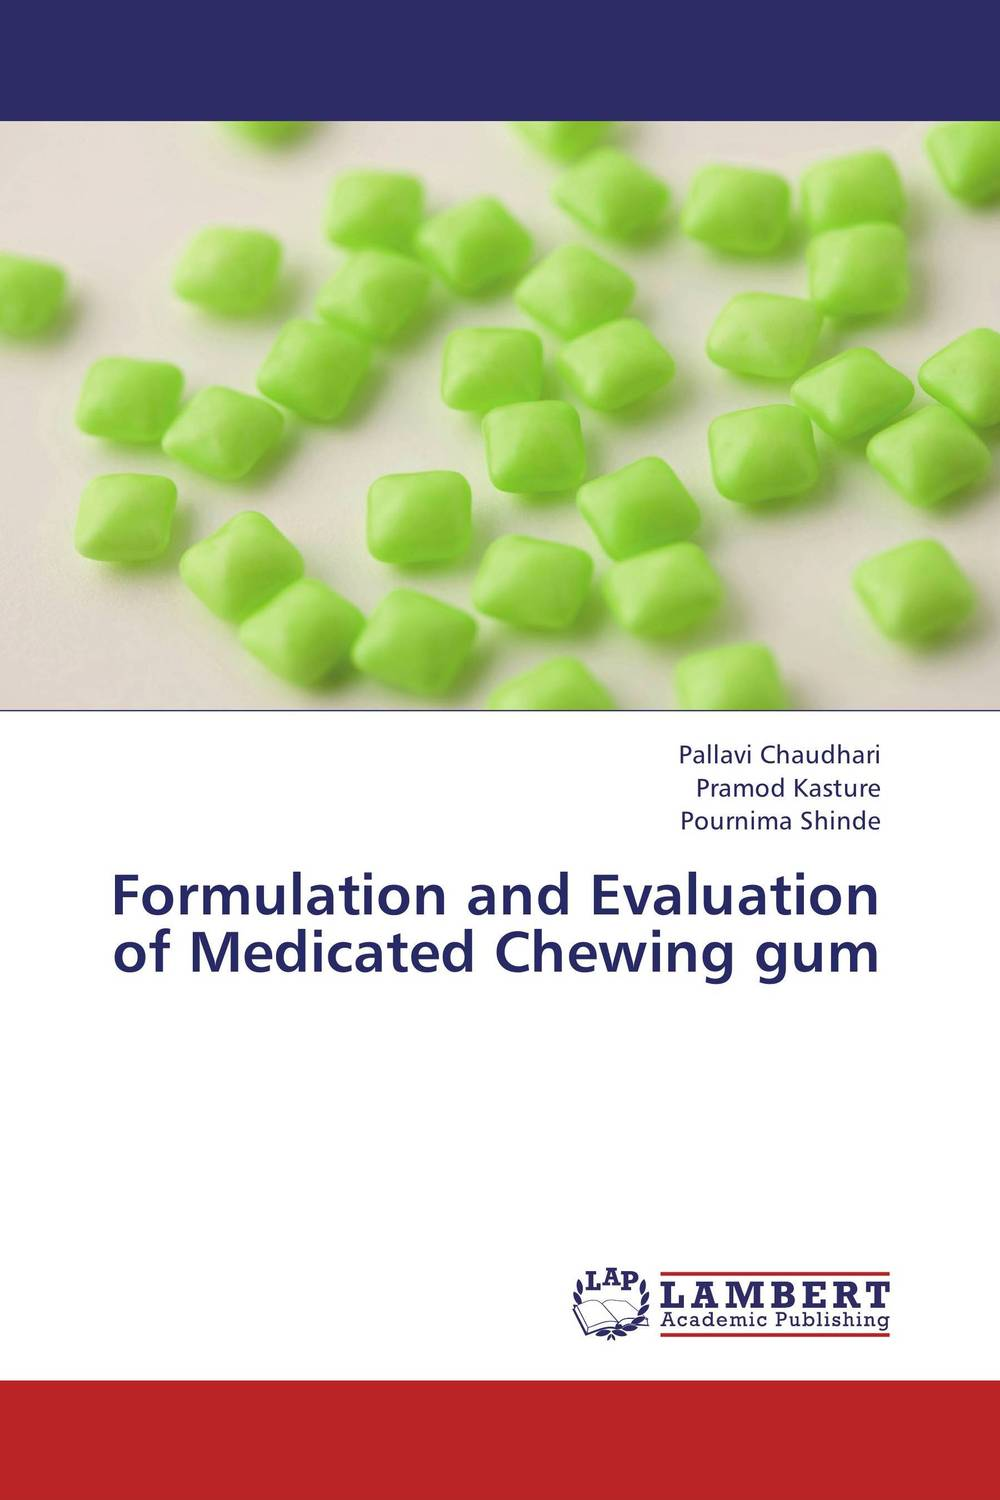 Formulation and Evaluation of Medicated Chewing gum amita yadav kamal singh rathore and geeta m patel formulation evaluation and optimization of mouth dissolving tablets